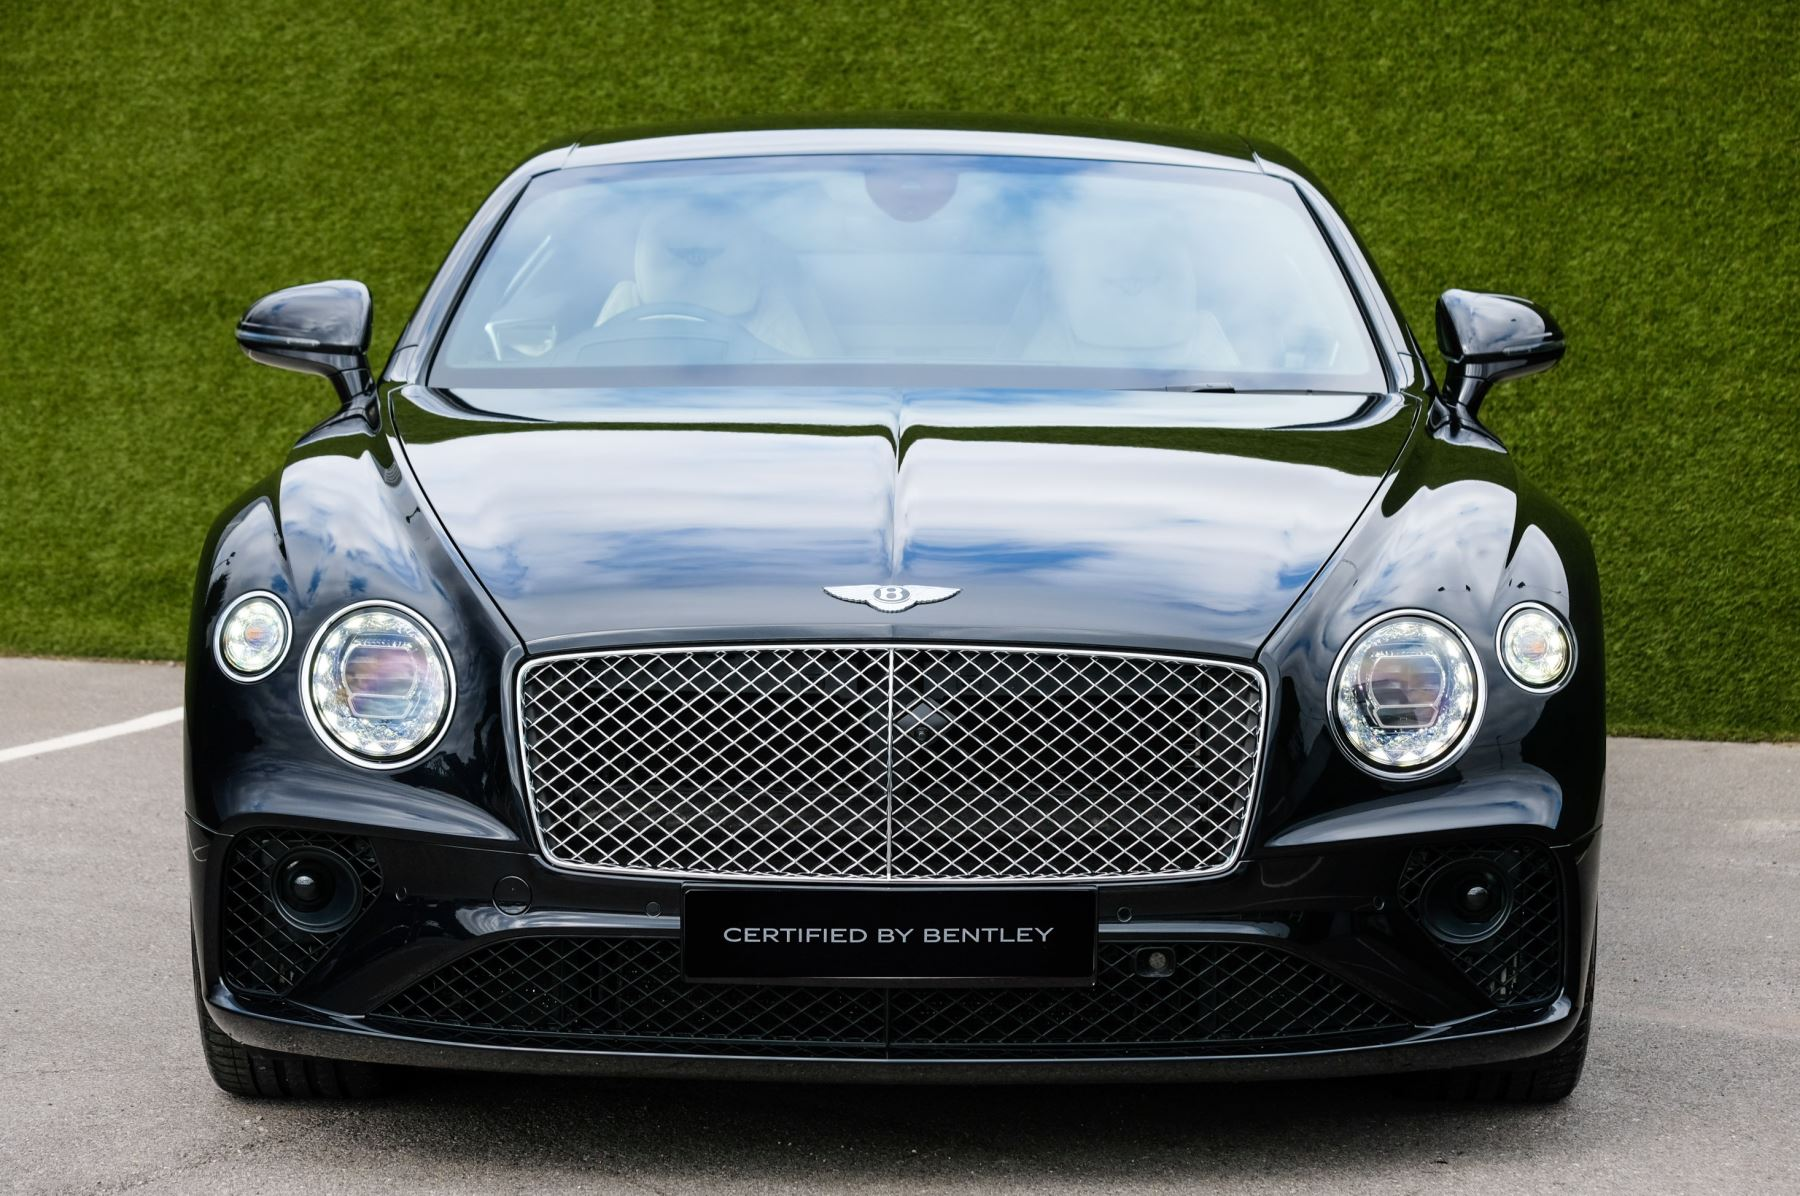 Bentley Continental GT 6.0 W12 1st Edition - Comfort Seating - Touring Specification image 2